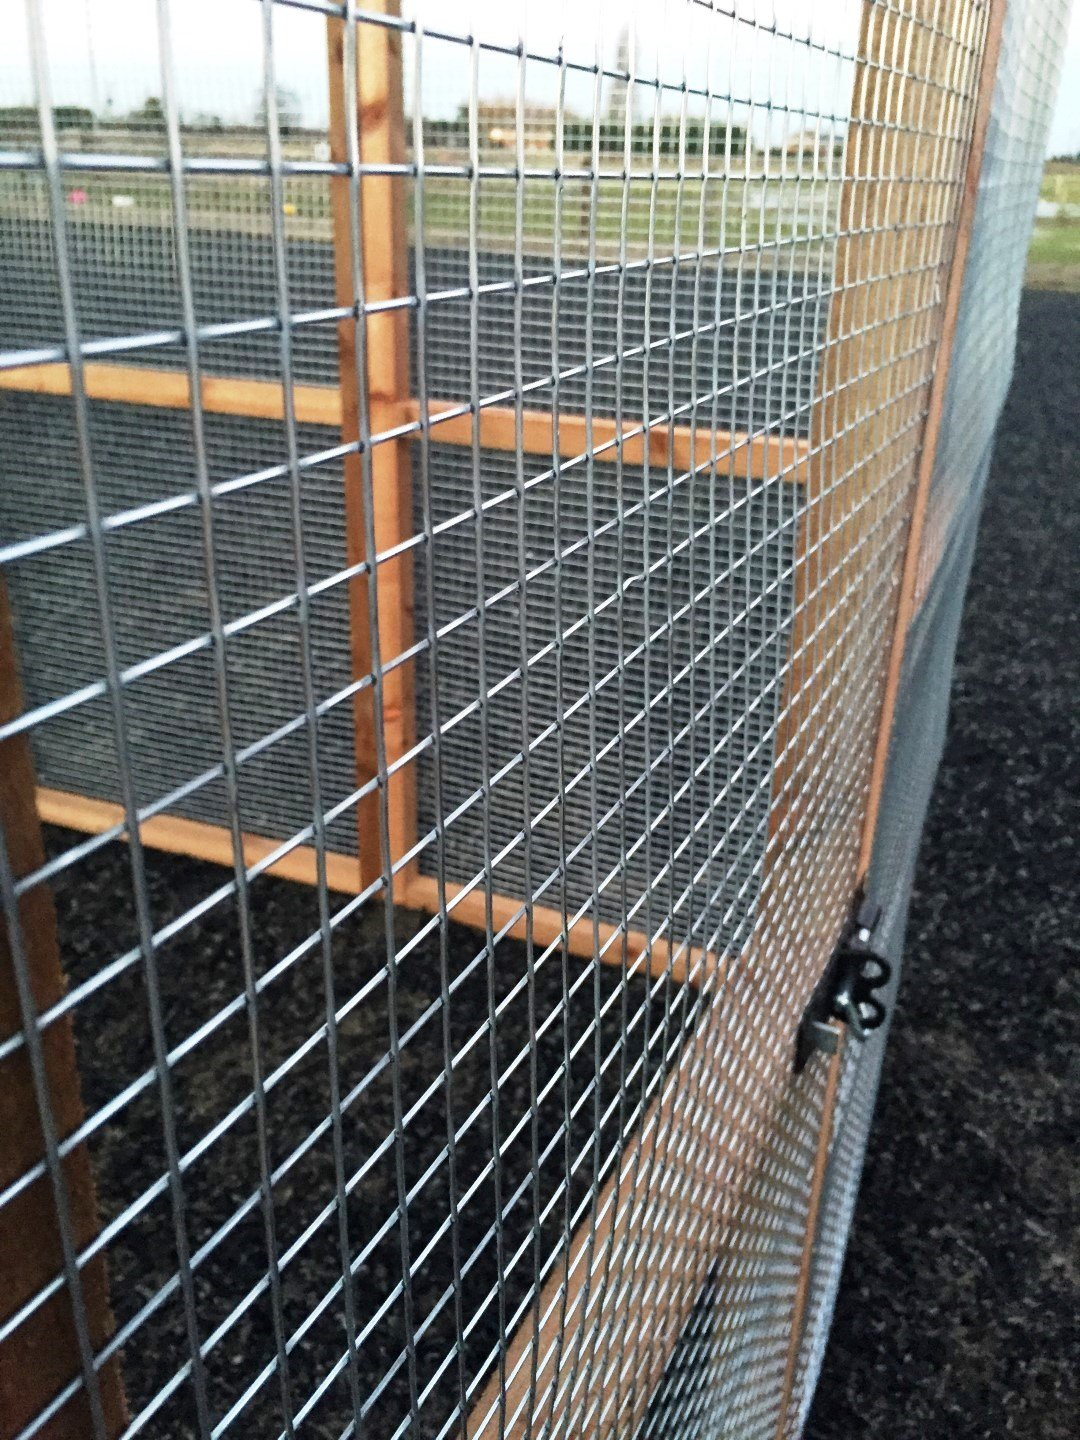 ANIMAL ENCLOSURE/RUN STRONG 16G Wire Chicken Rabbits Dogs Cats Birds ...